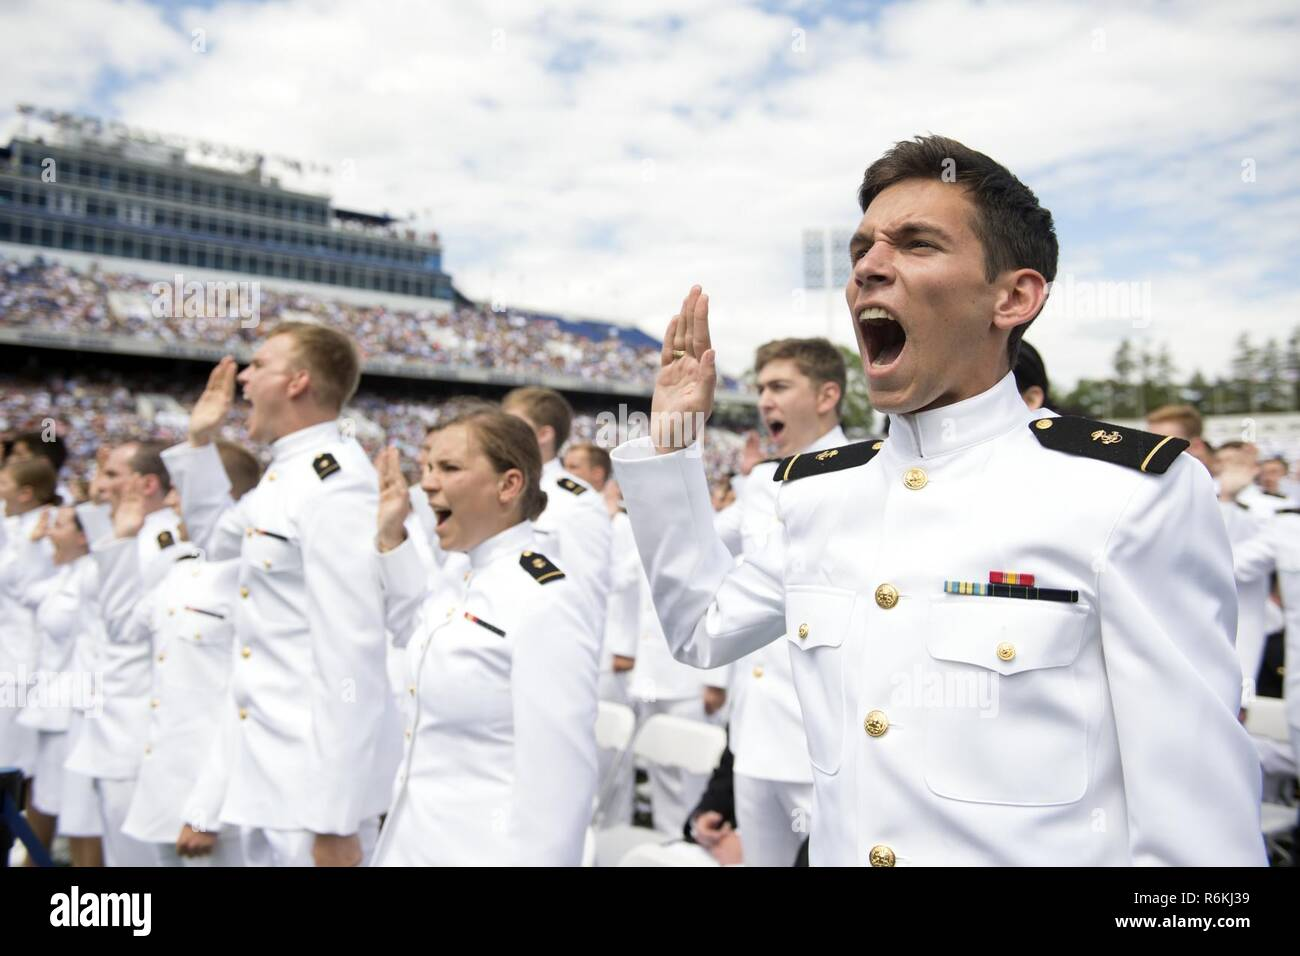 why do i want to be a naval officer